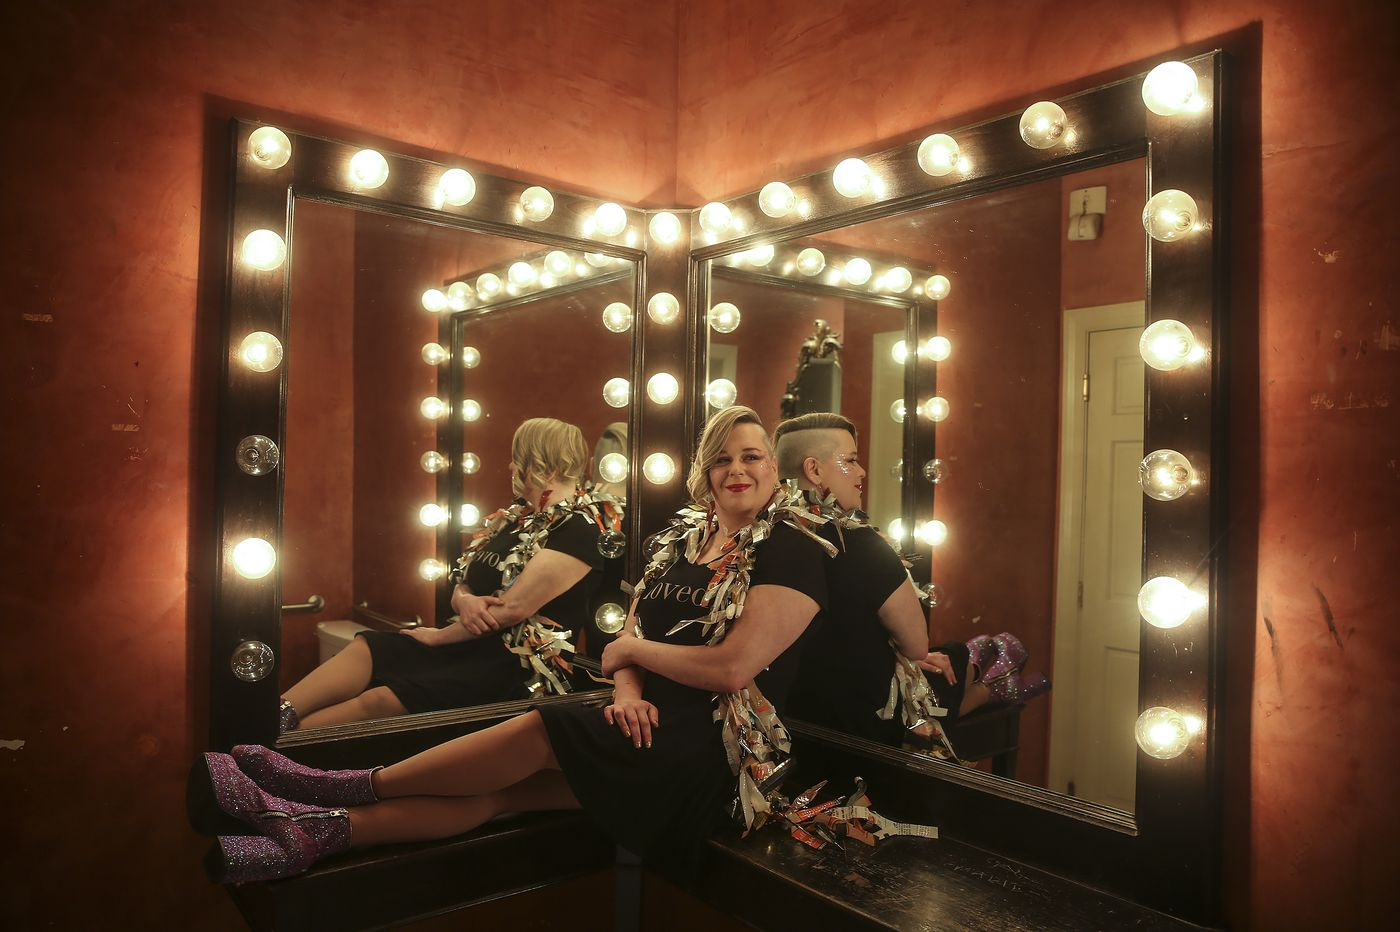 Cabaret darling Shannon Turner cheated death three times. She comes alive on stage.